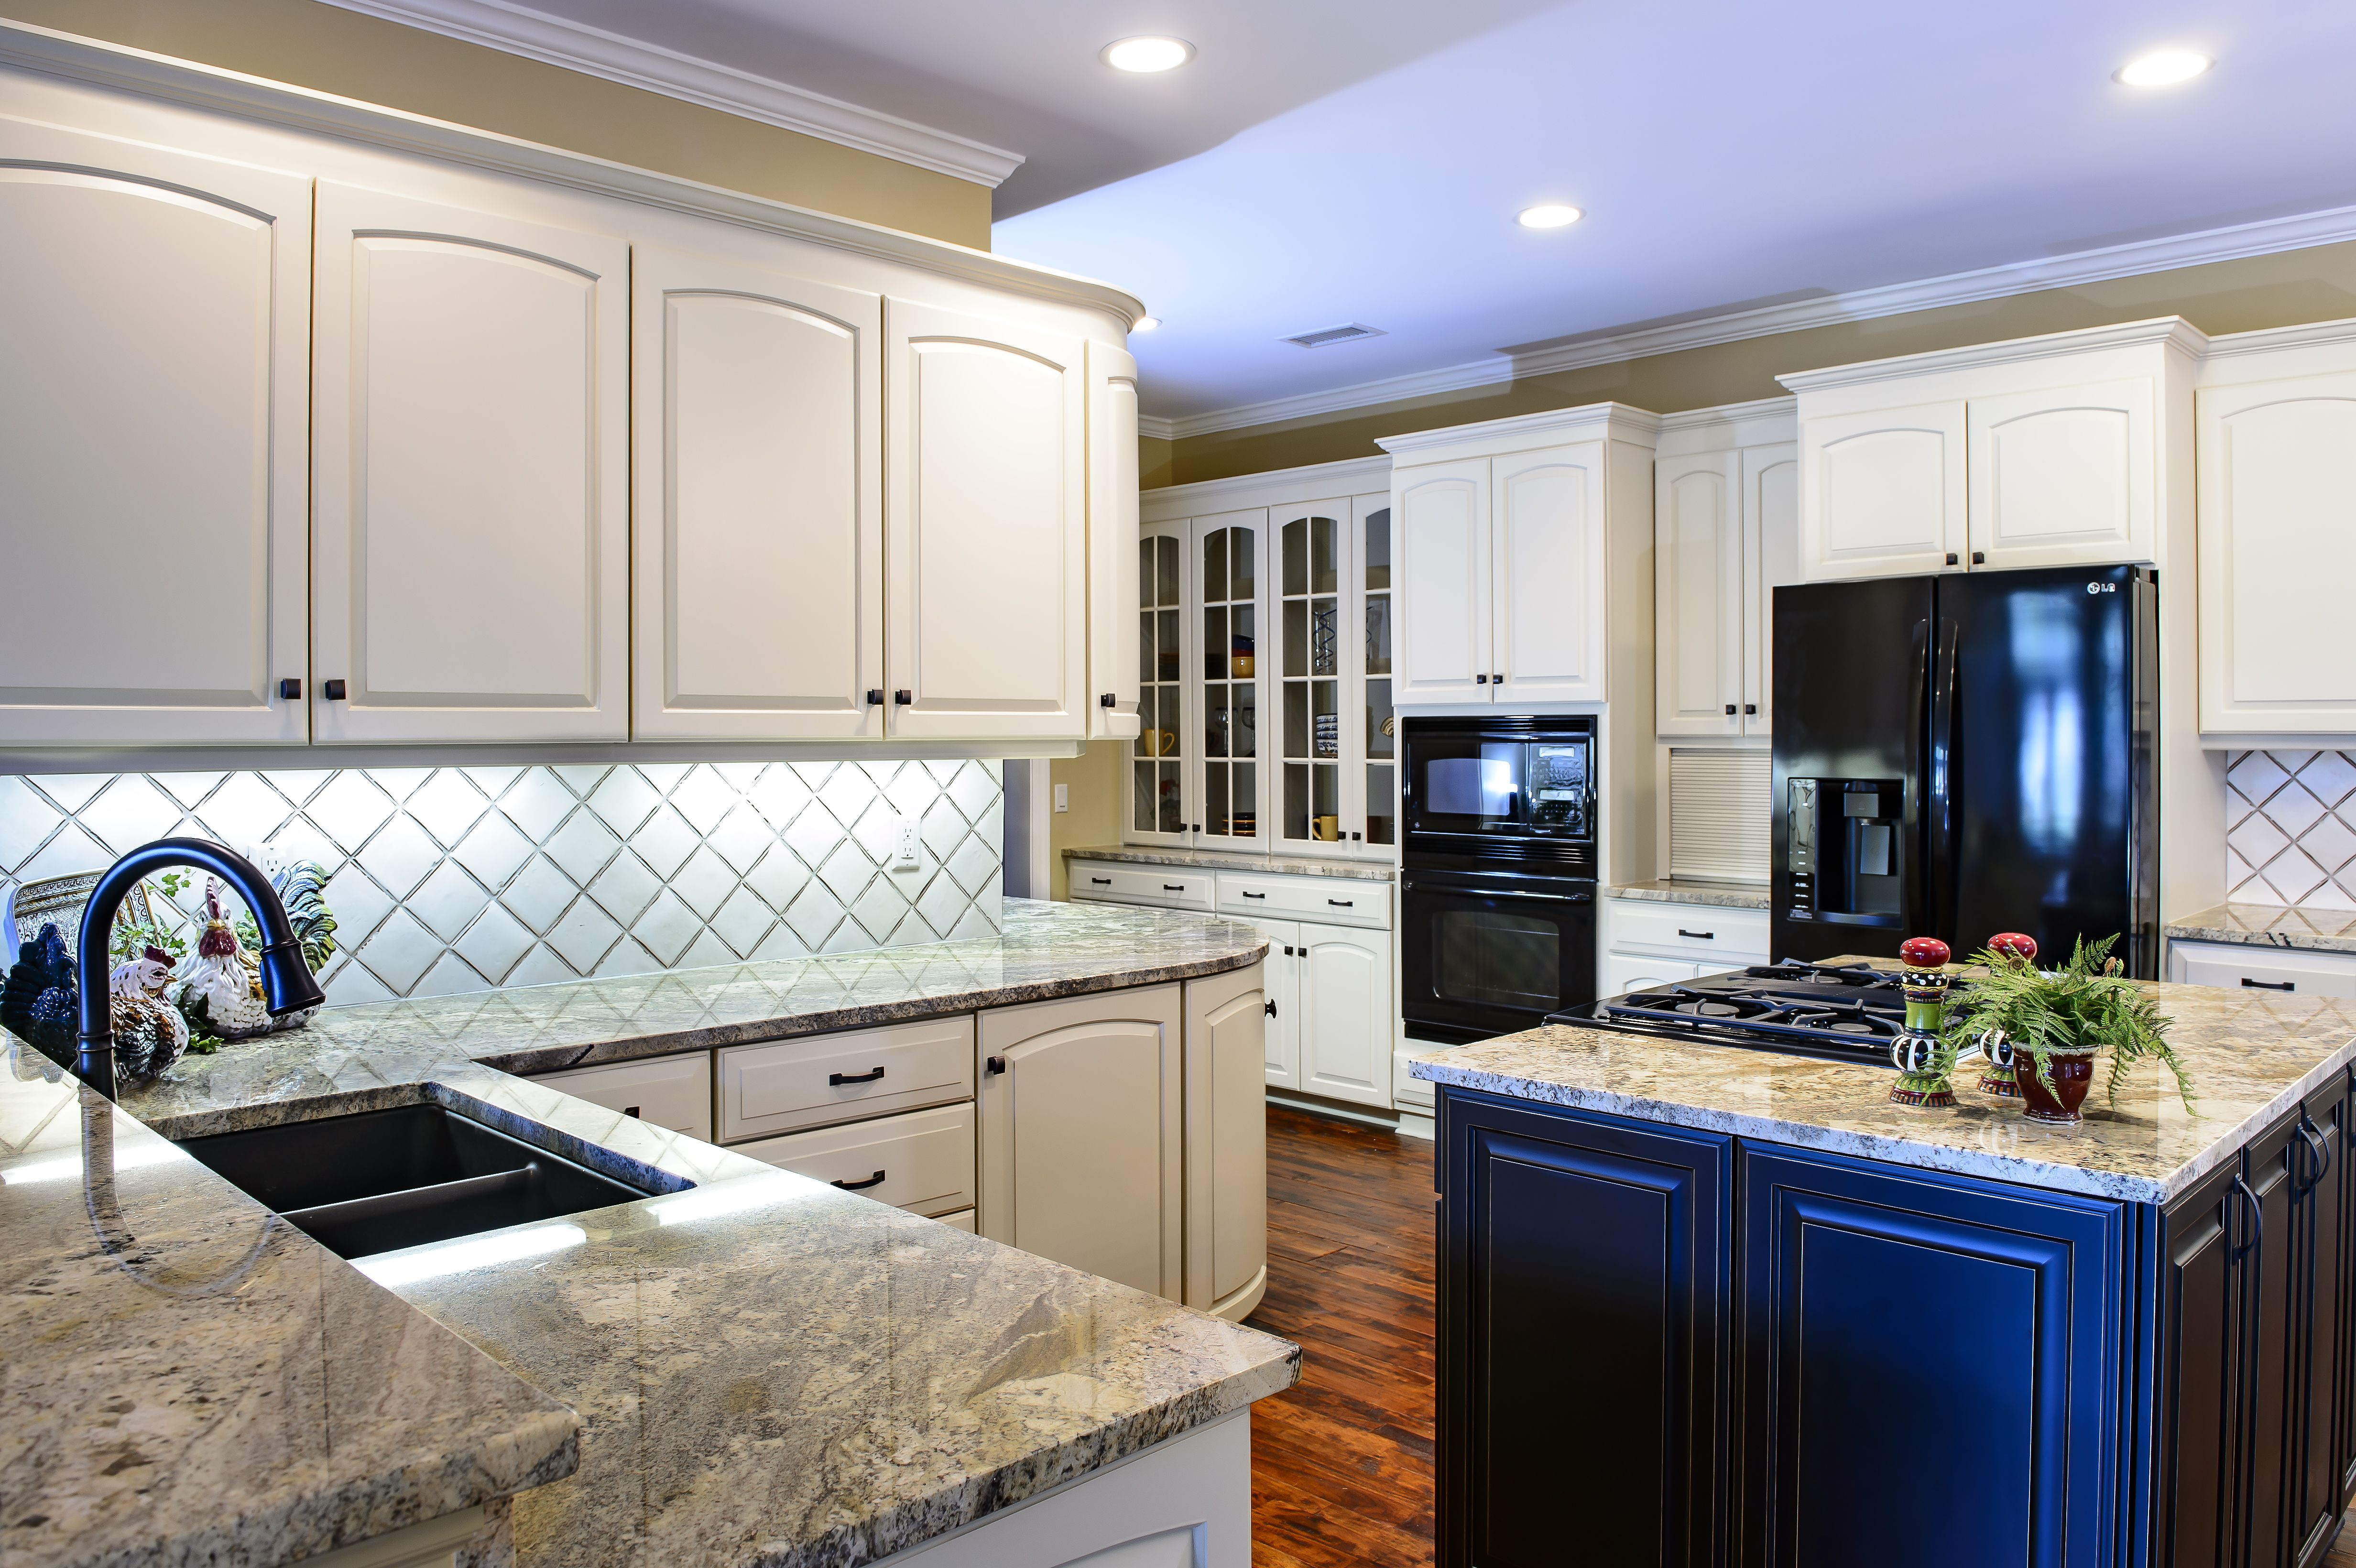 Love this kitchen very french provincial with lots of great